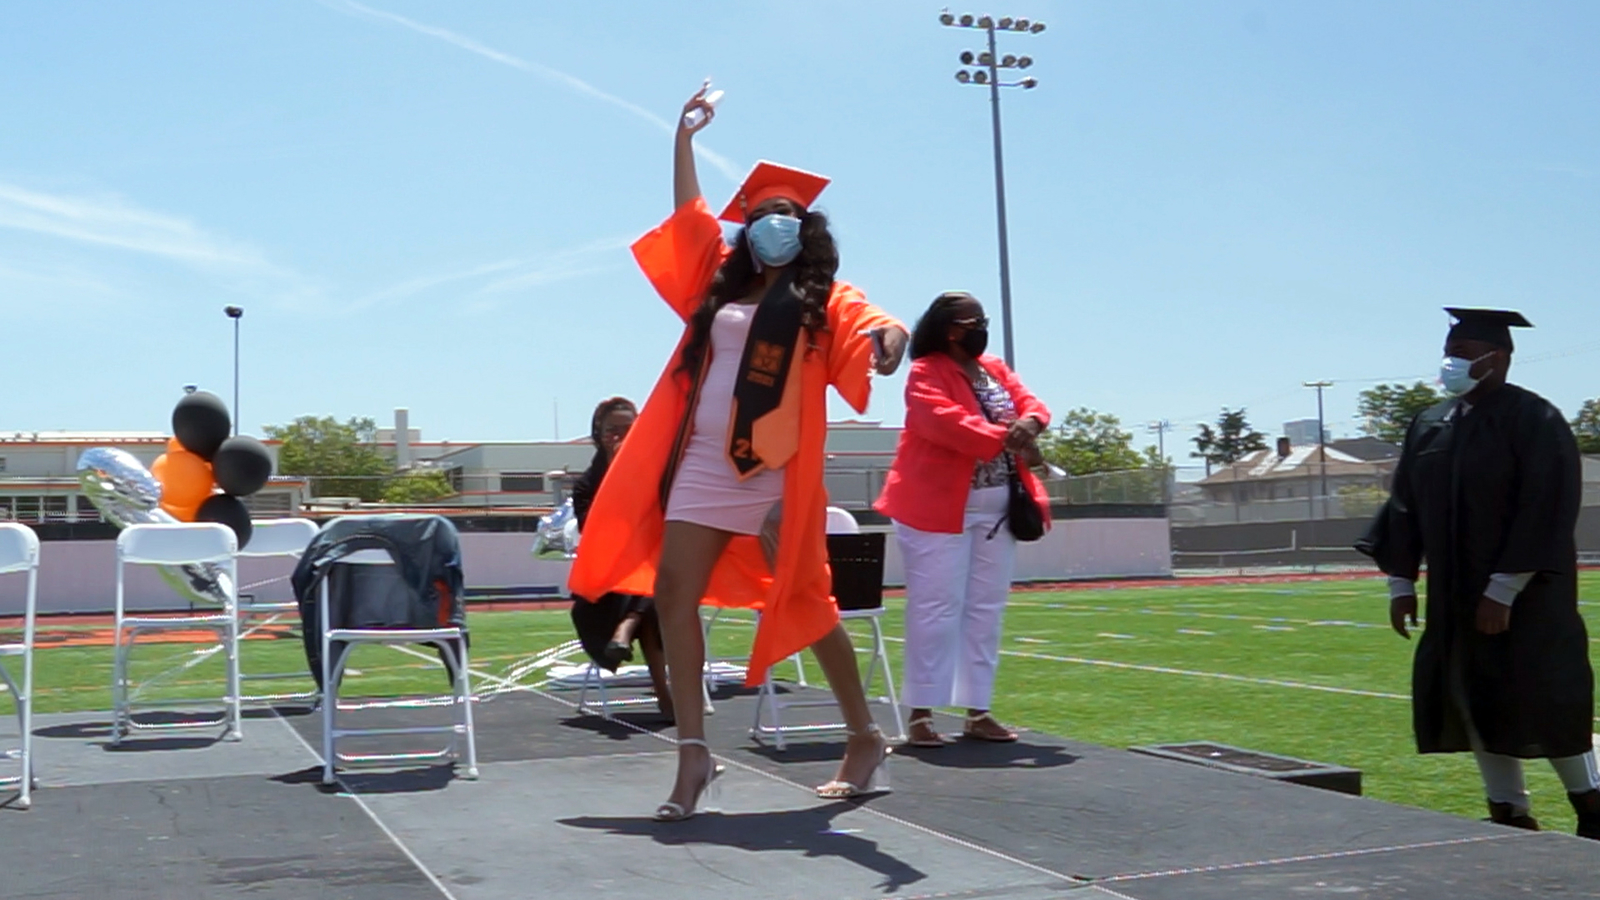 After a year apart, McClymonds High School students finally get chance to meet at graduation, only to say goodbye